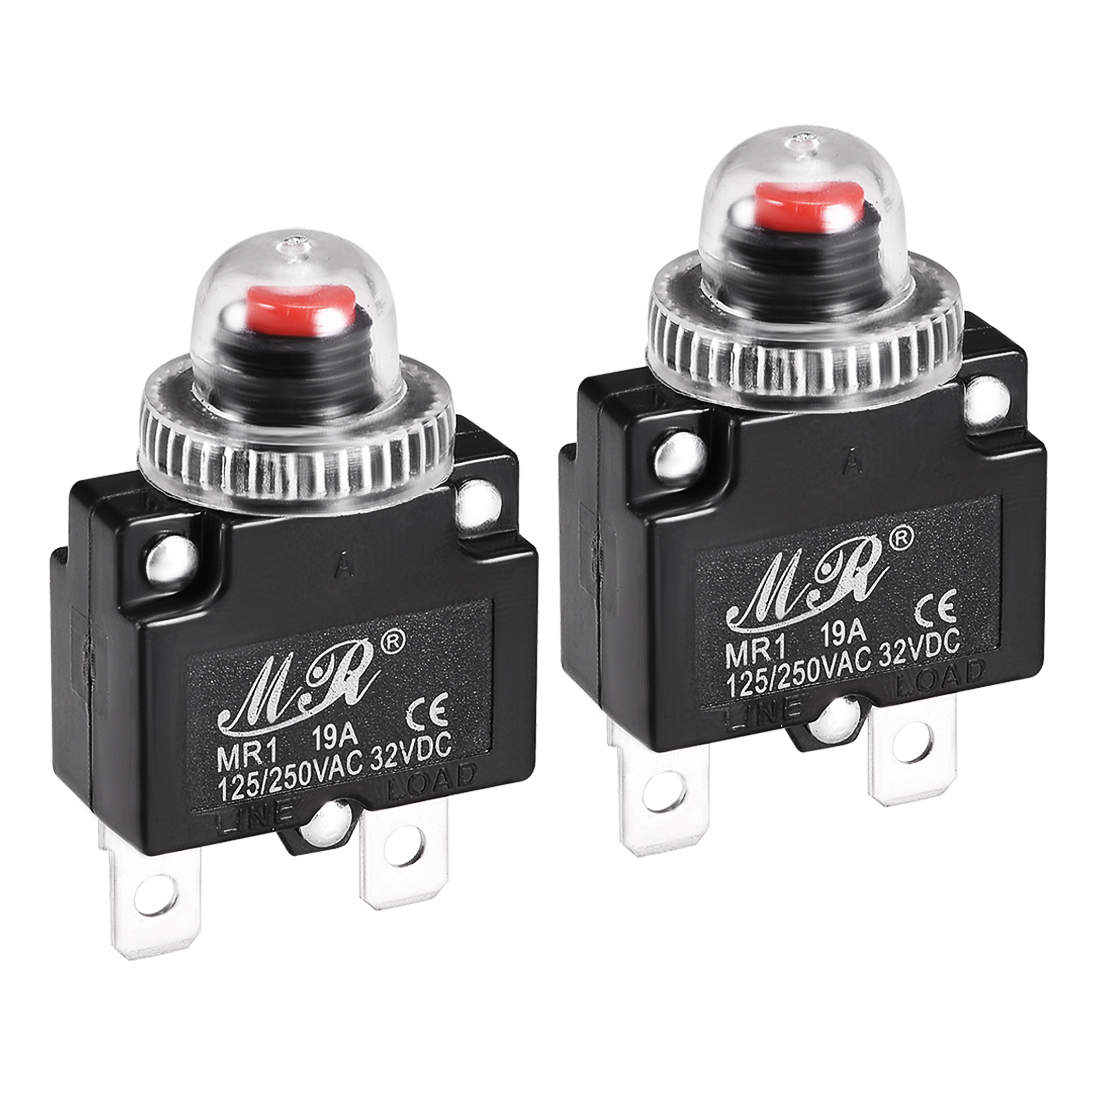 2 Pcs 19A 125/250V Push Button Reset Overload Protector Thermal Circuit Breaker